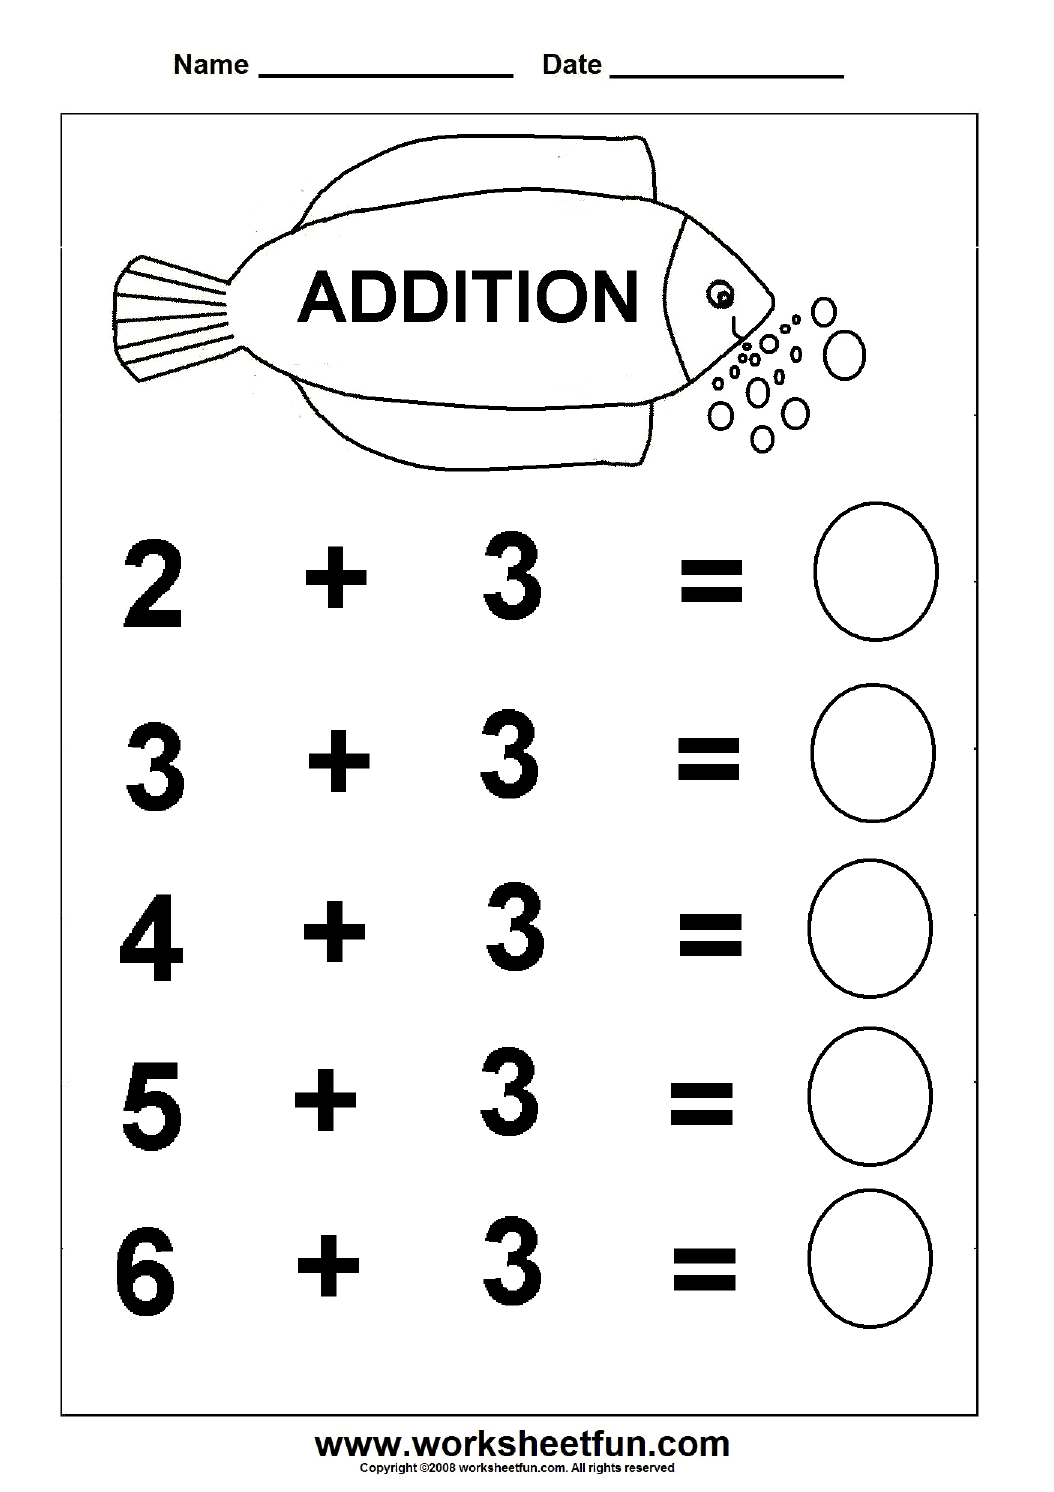 hight resolution of Beginner Addition – 6 Kindergarten Addition Worksheets / FREE Printable  Worksheets – Worksheetfun